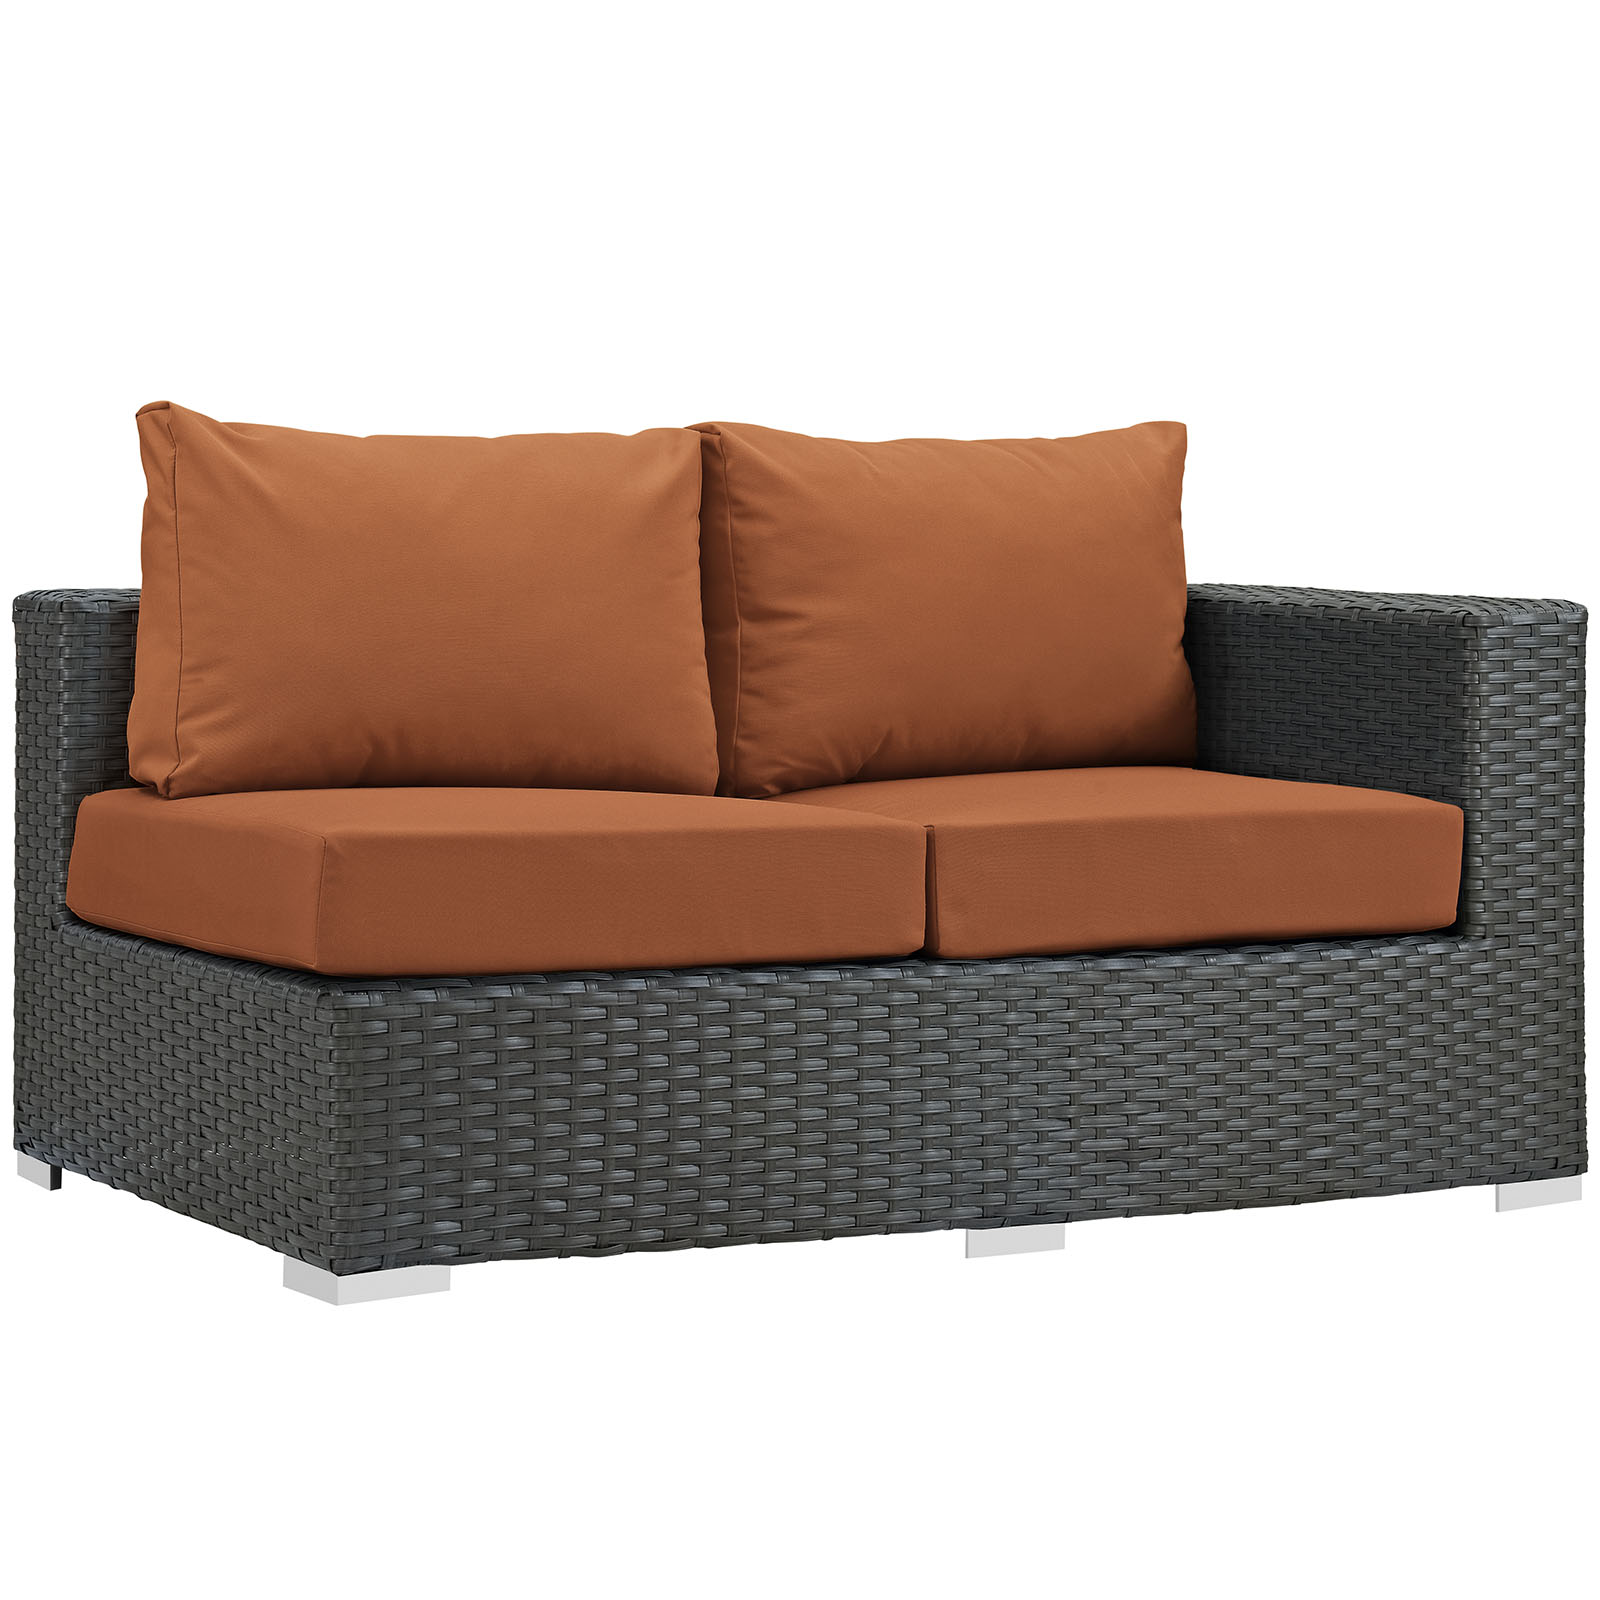 Modern Contemporary Urban Design Outdoor Patio Balcony Right Arm Loveseat Sofa, Orange, Rattan